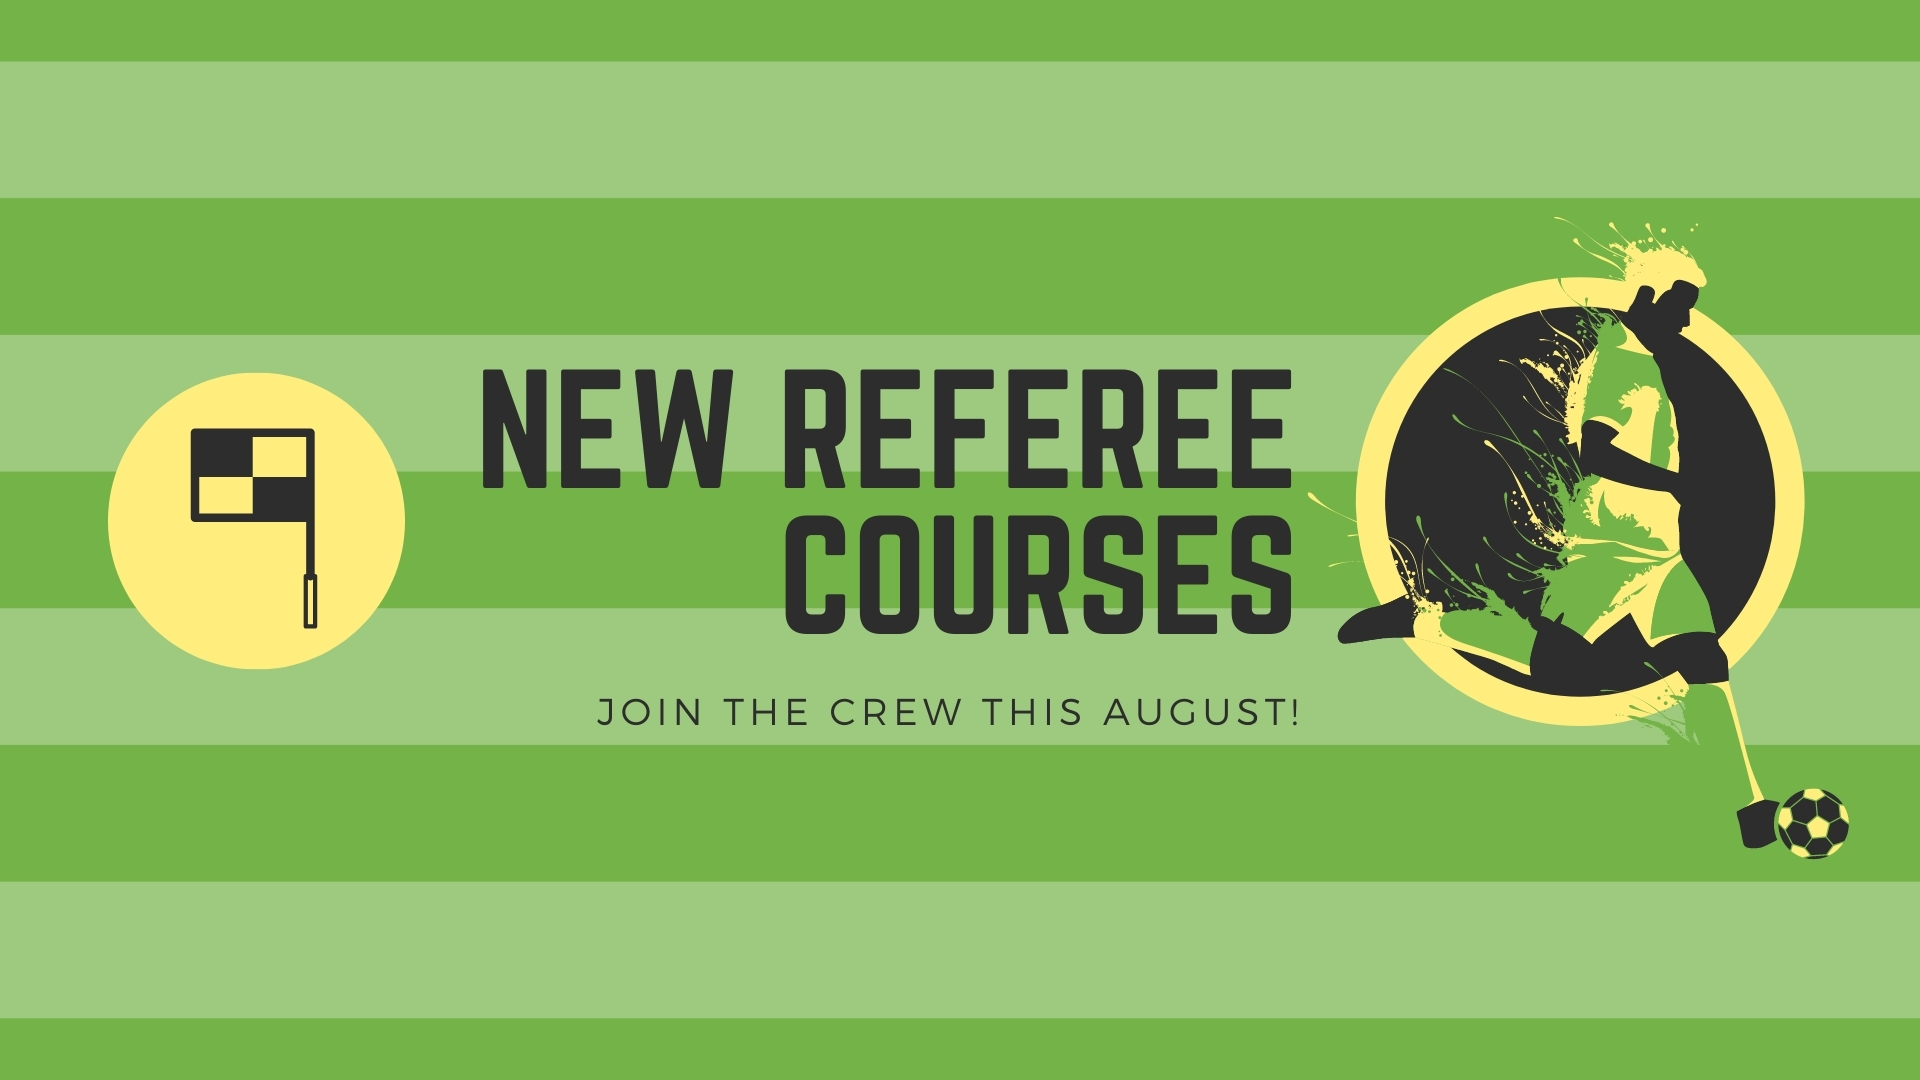 1920x1080 New Referee Courses